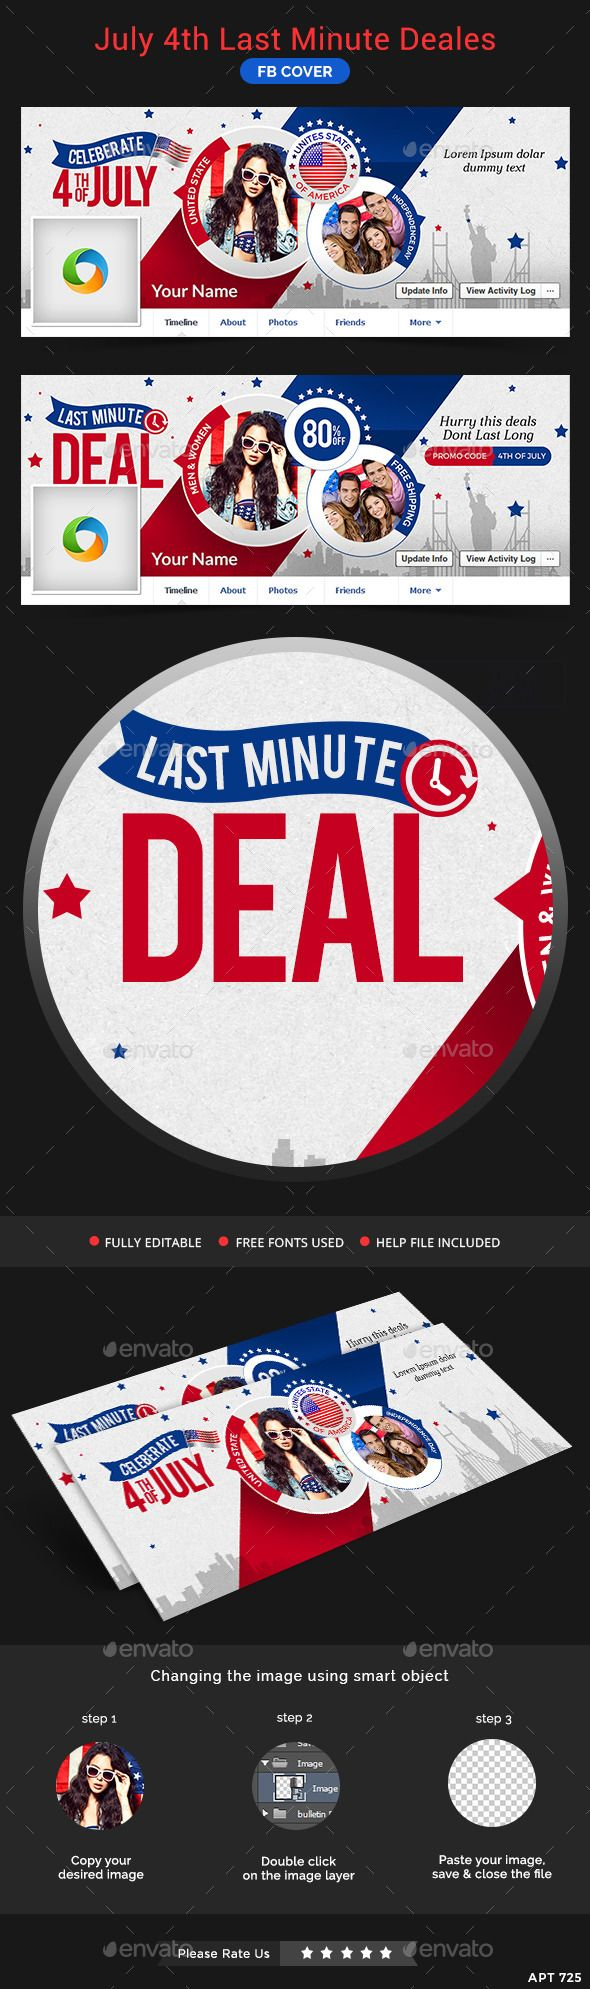 July 4th Last Minute Deals Facebook Cover Template PSD #design Download: http://graphicriver.net/item/july-4th-last-minute-deals-facebook-cover/11975493?ref=ksioks